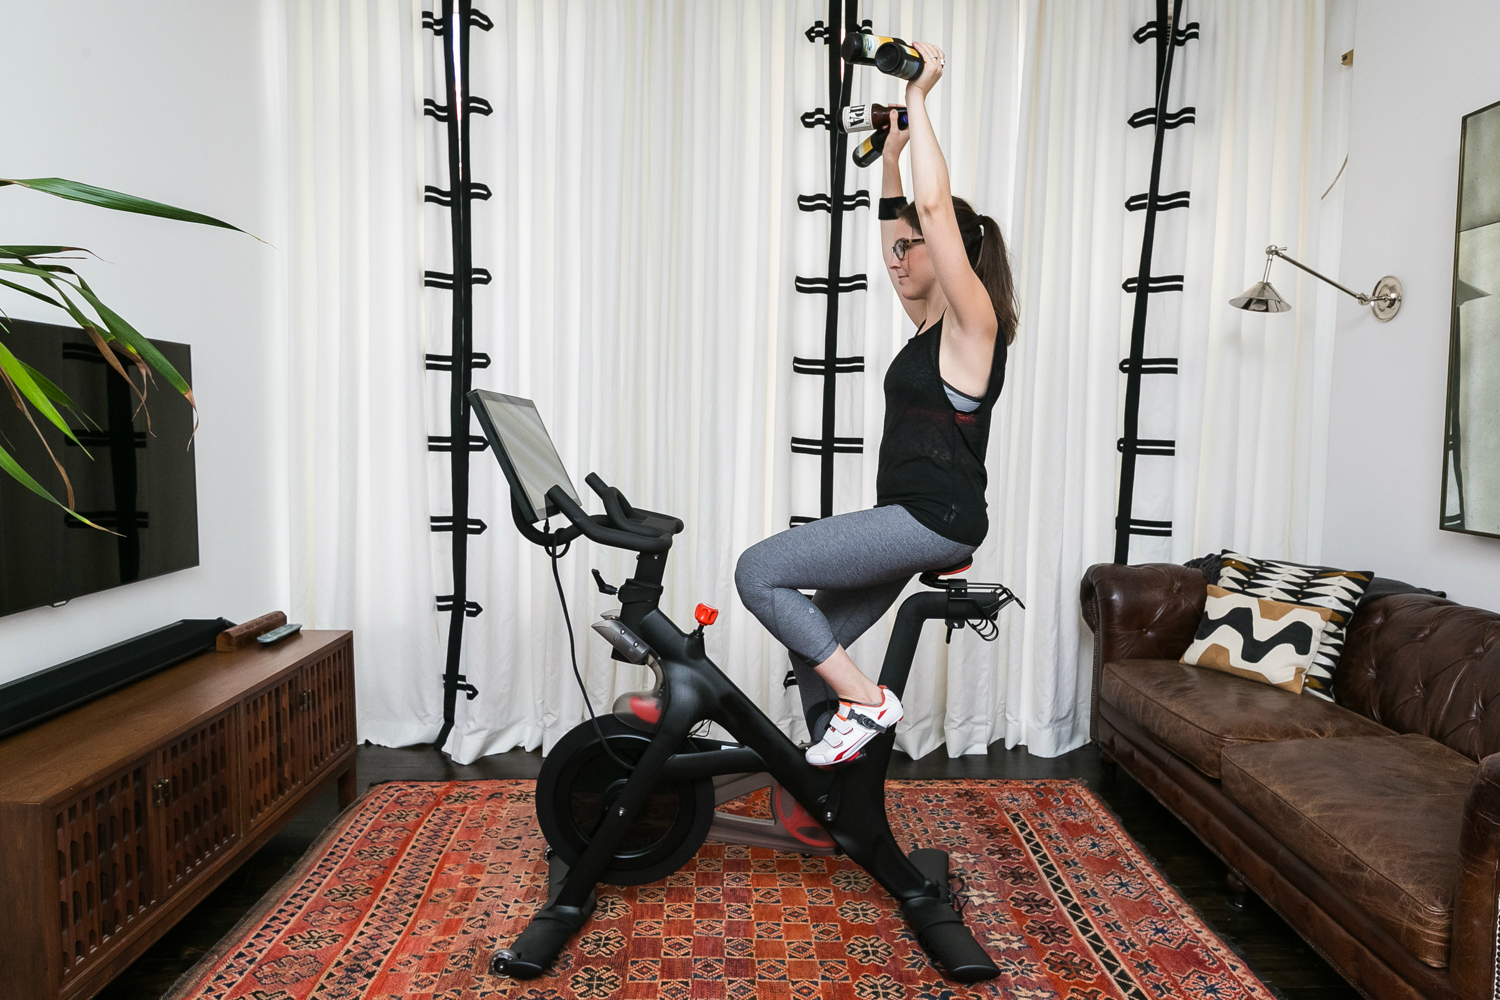 5 Best Spinning Bikes For Home Use – 2017